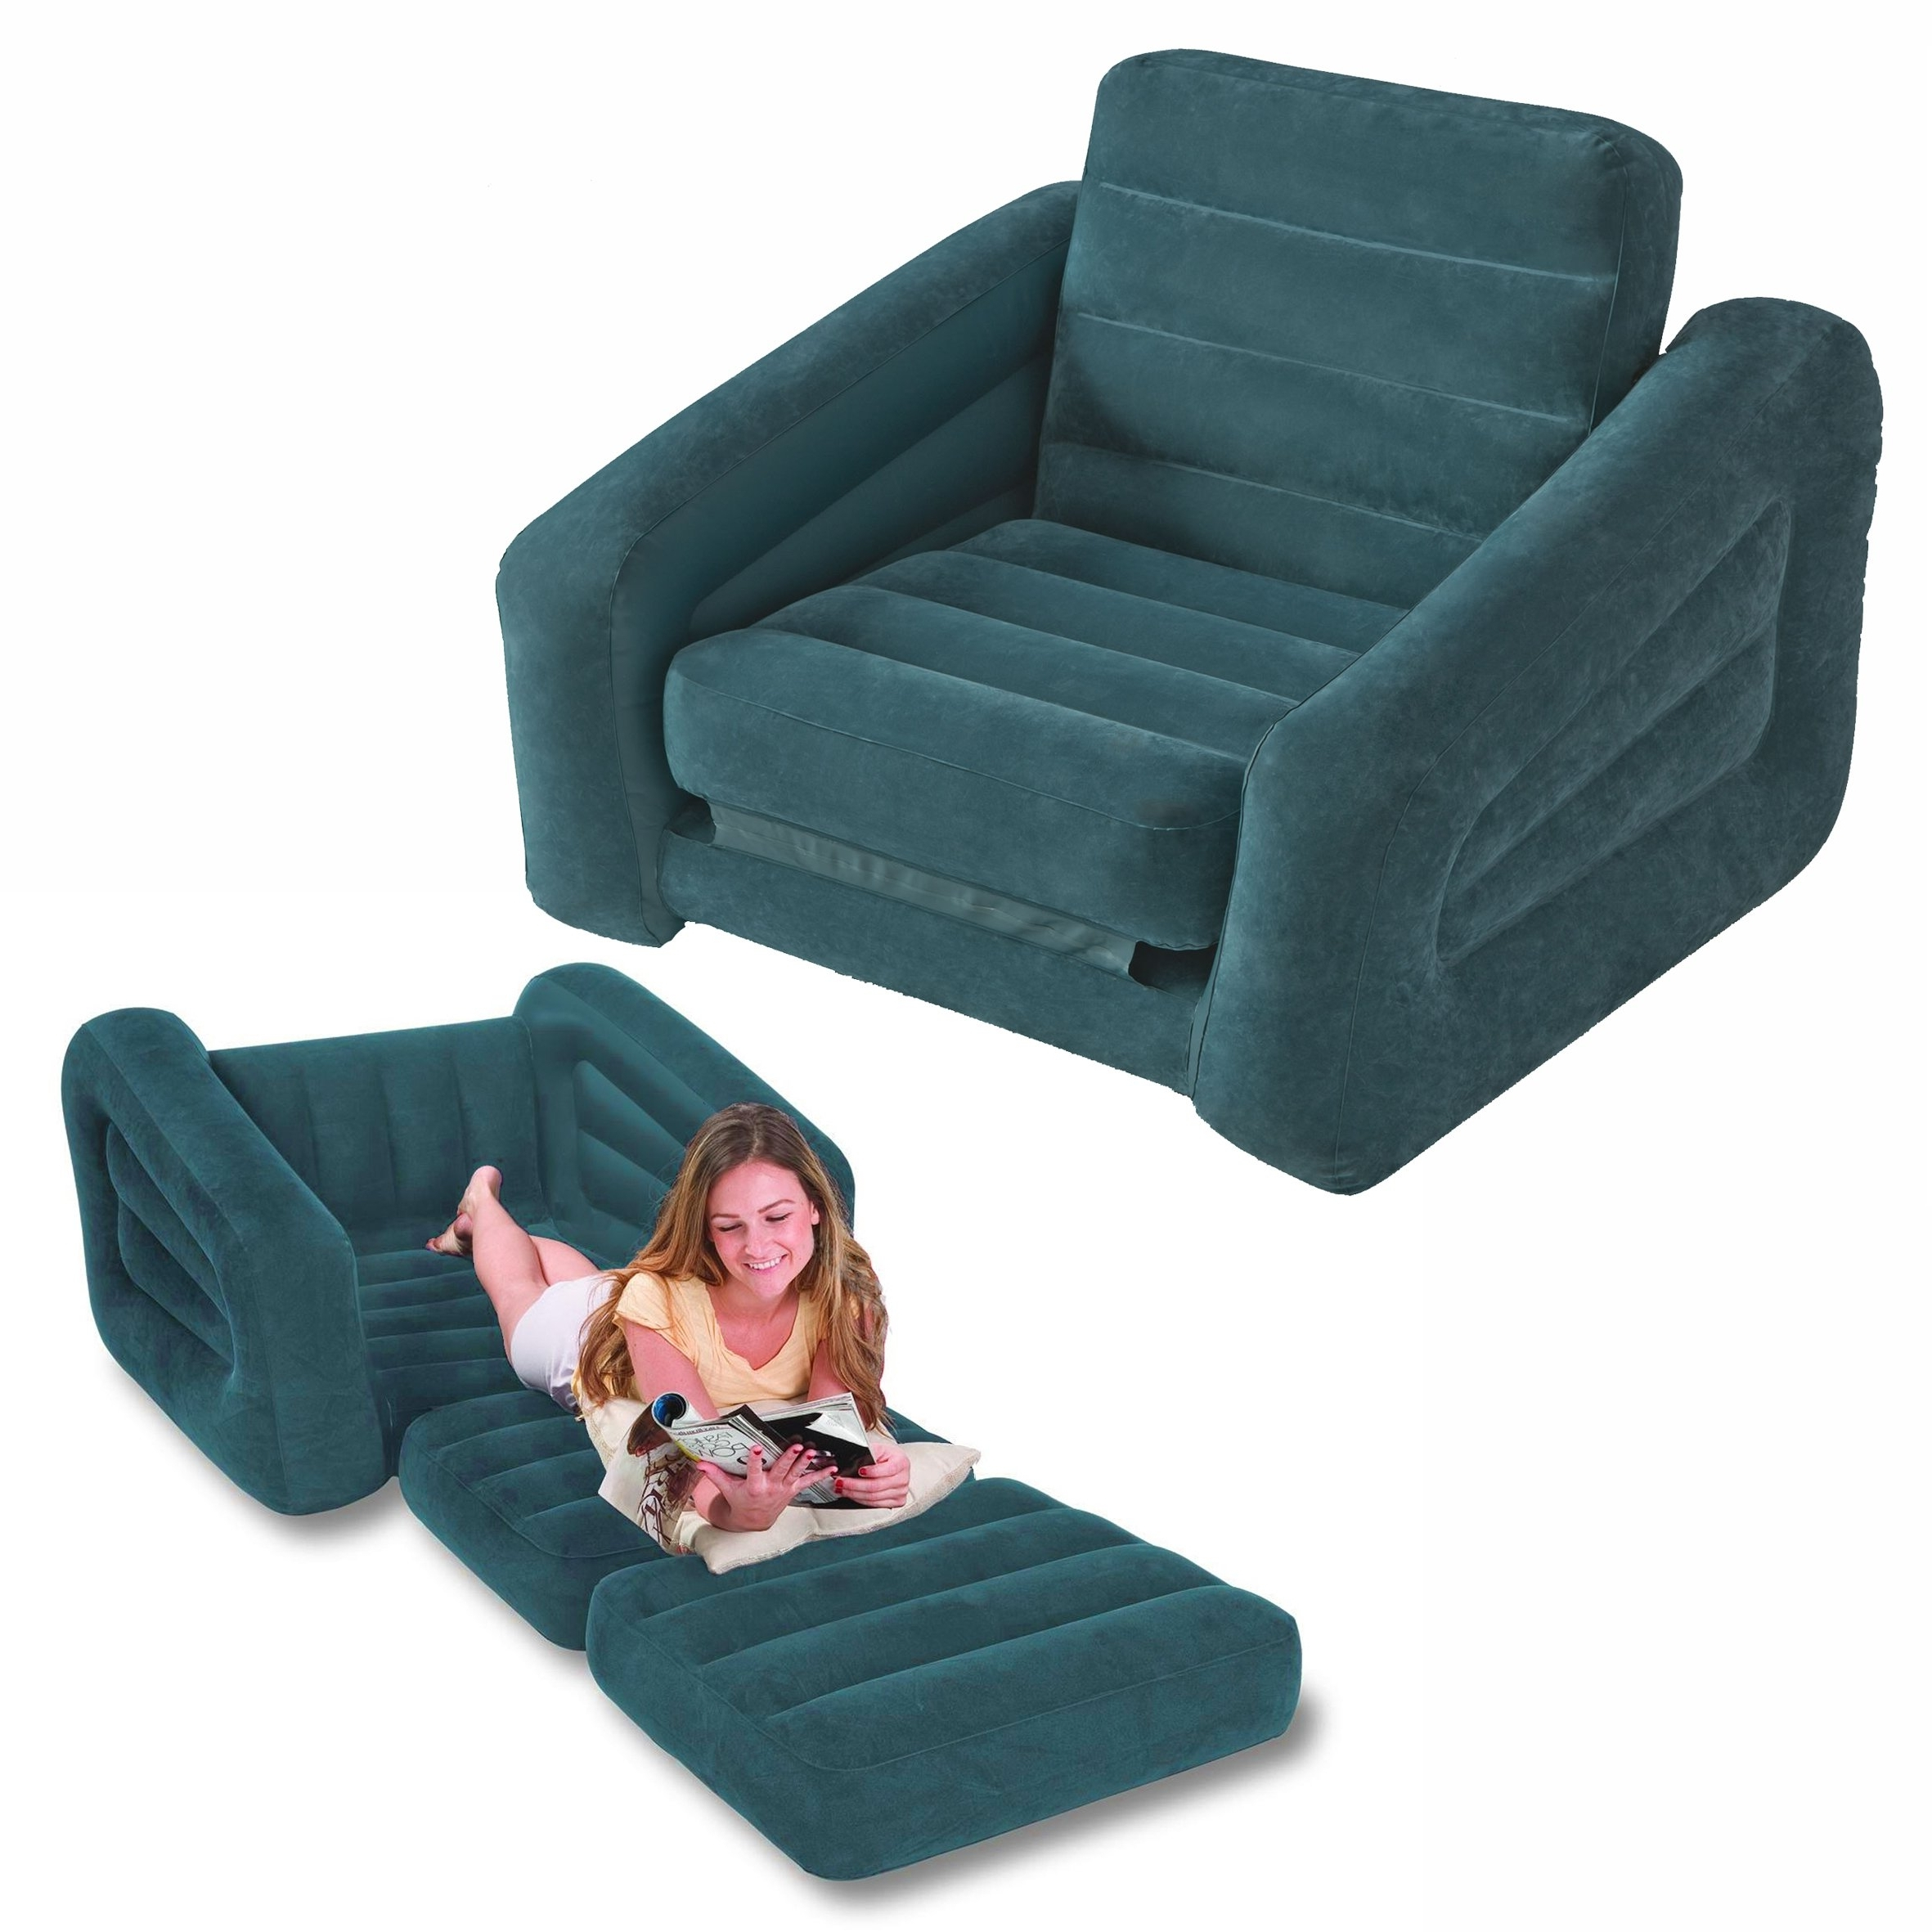 Intex One Person Inflatable Pull Out Chair Bed Sofa Bed #68565 Pertaining To Current Inflatable Sofas And Chairs (Gallery 4 of 15)